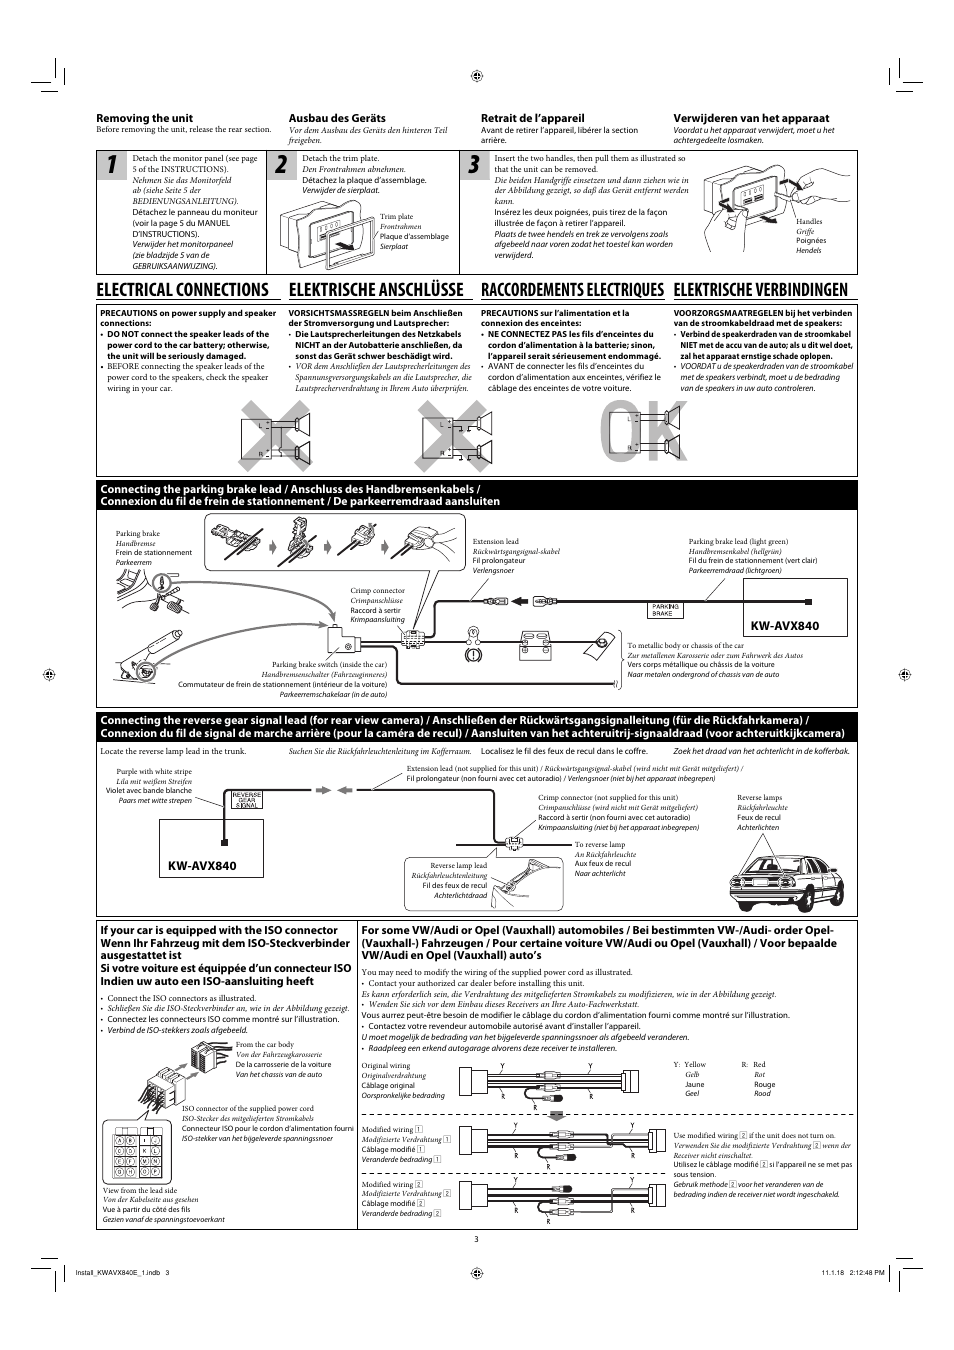 Removing the unit, Electrical connections, Connecting the